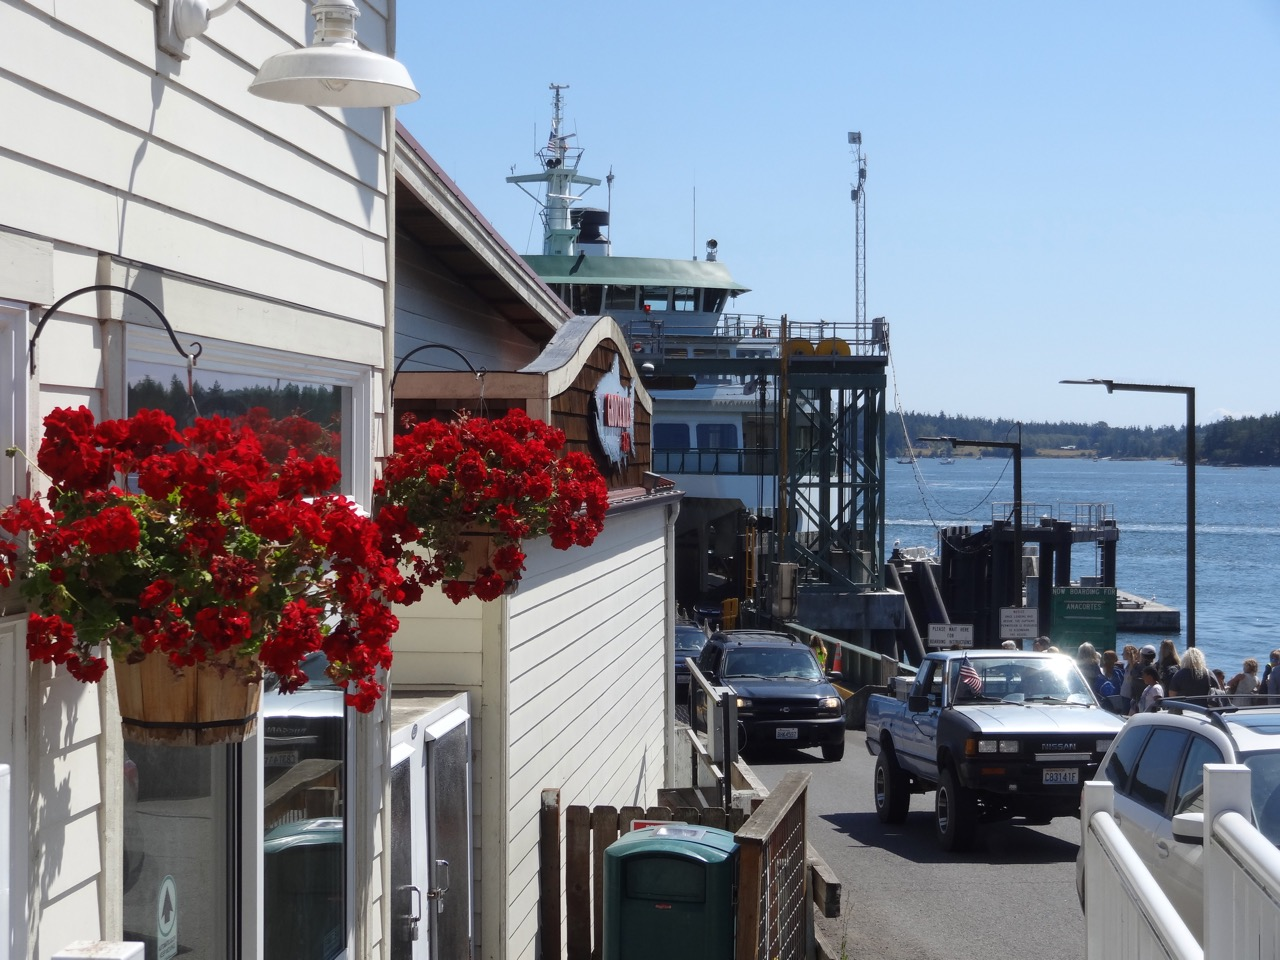 Orcas Village Store at the ferry landing